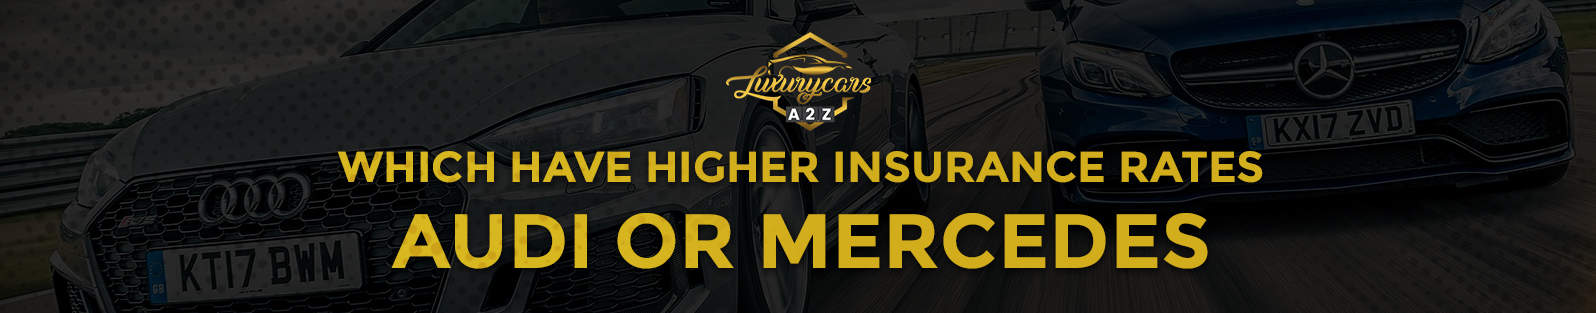 which have higher insurance rates audi or mercedes